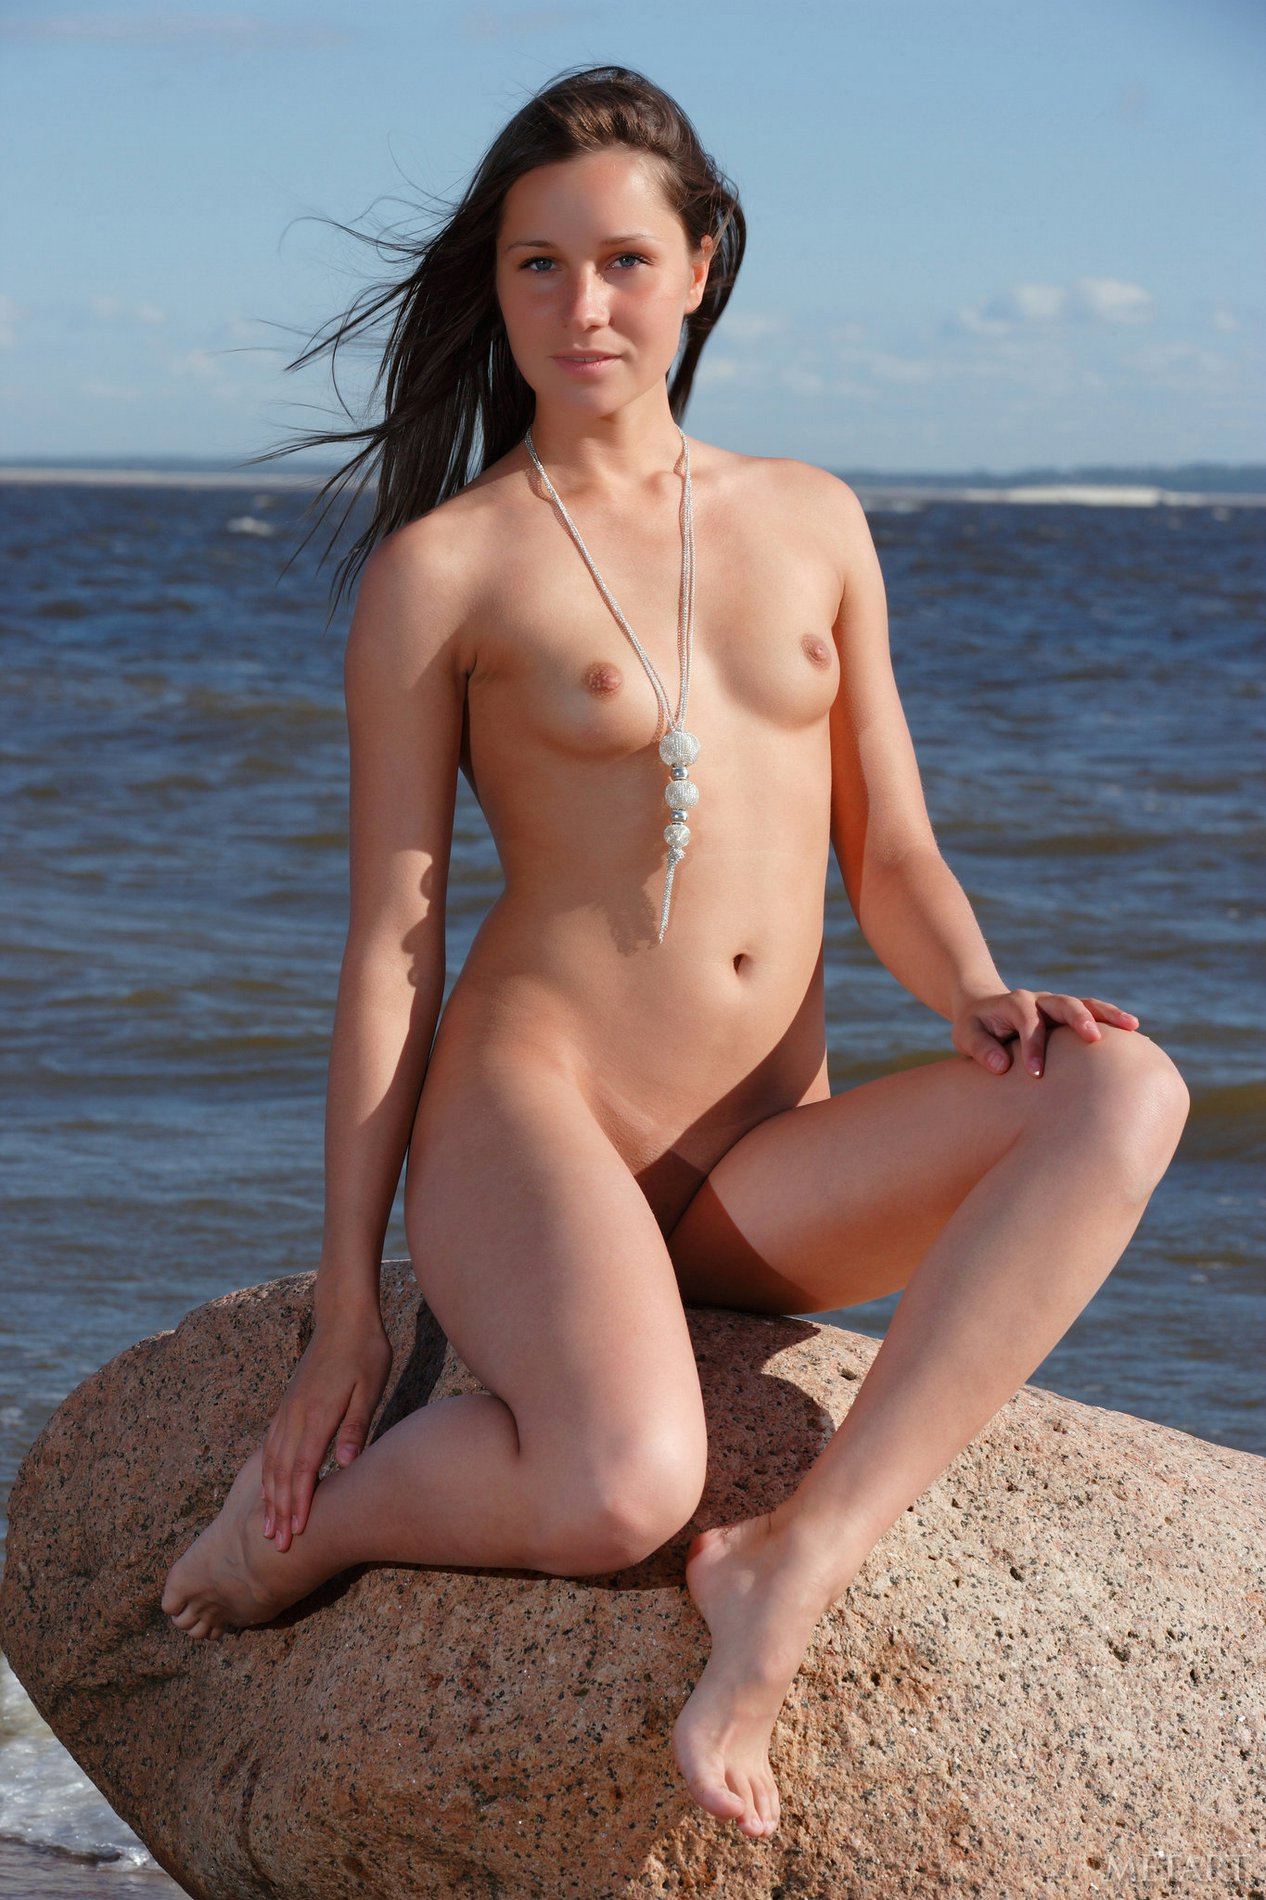 Teenage Sizzling Body On The Beach